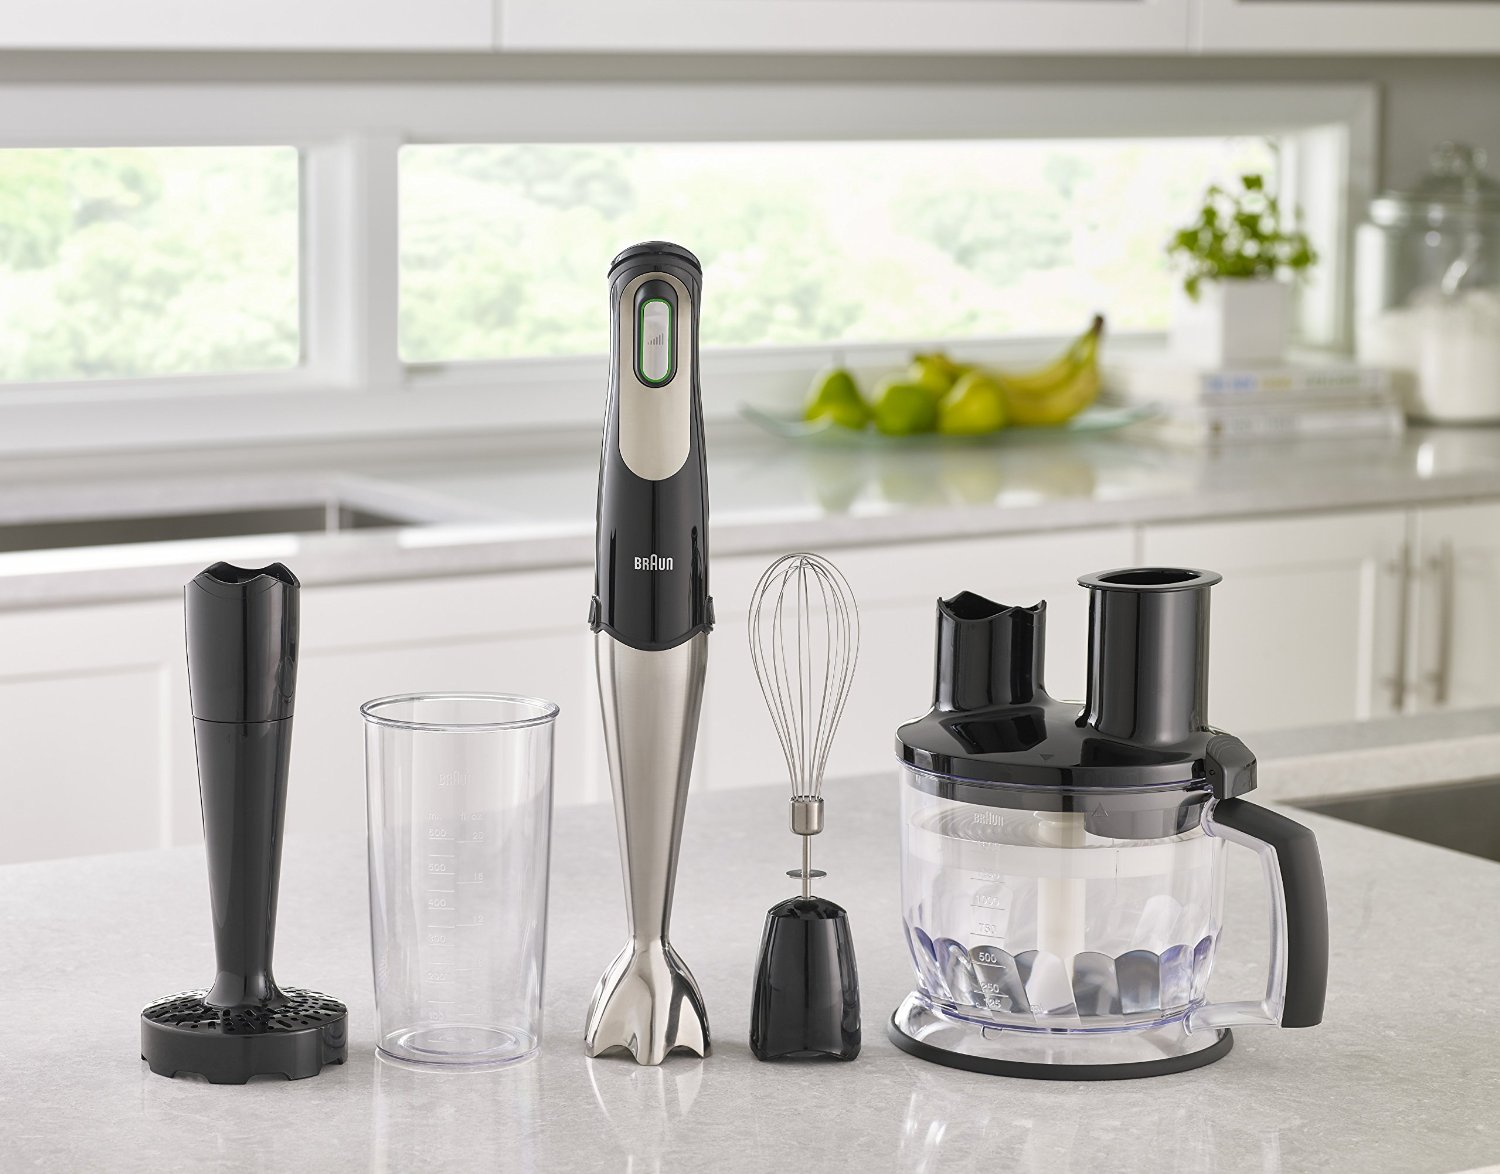 braun-mq777-immersion-blender